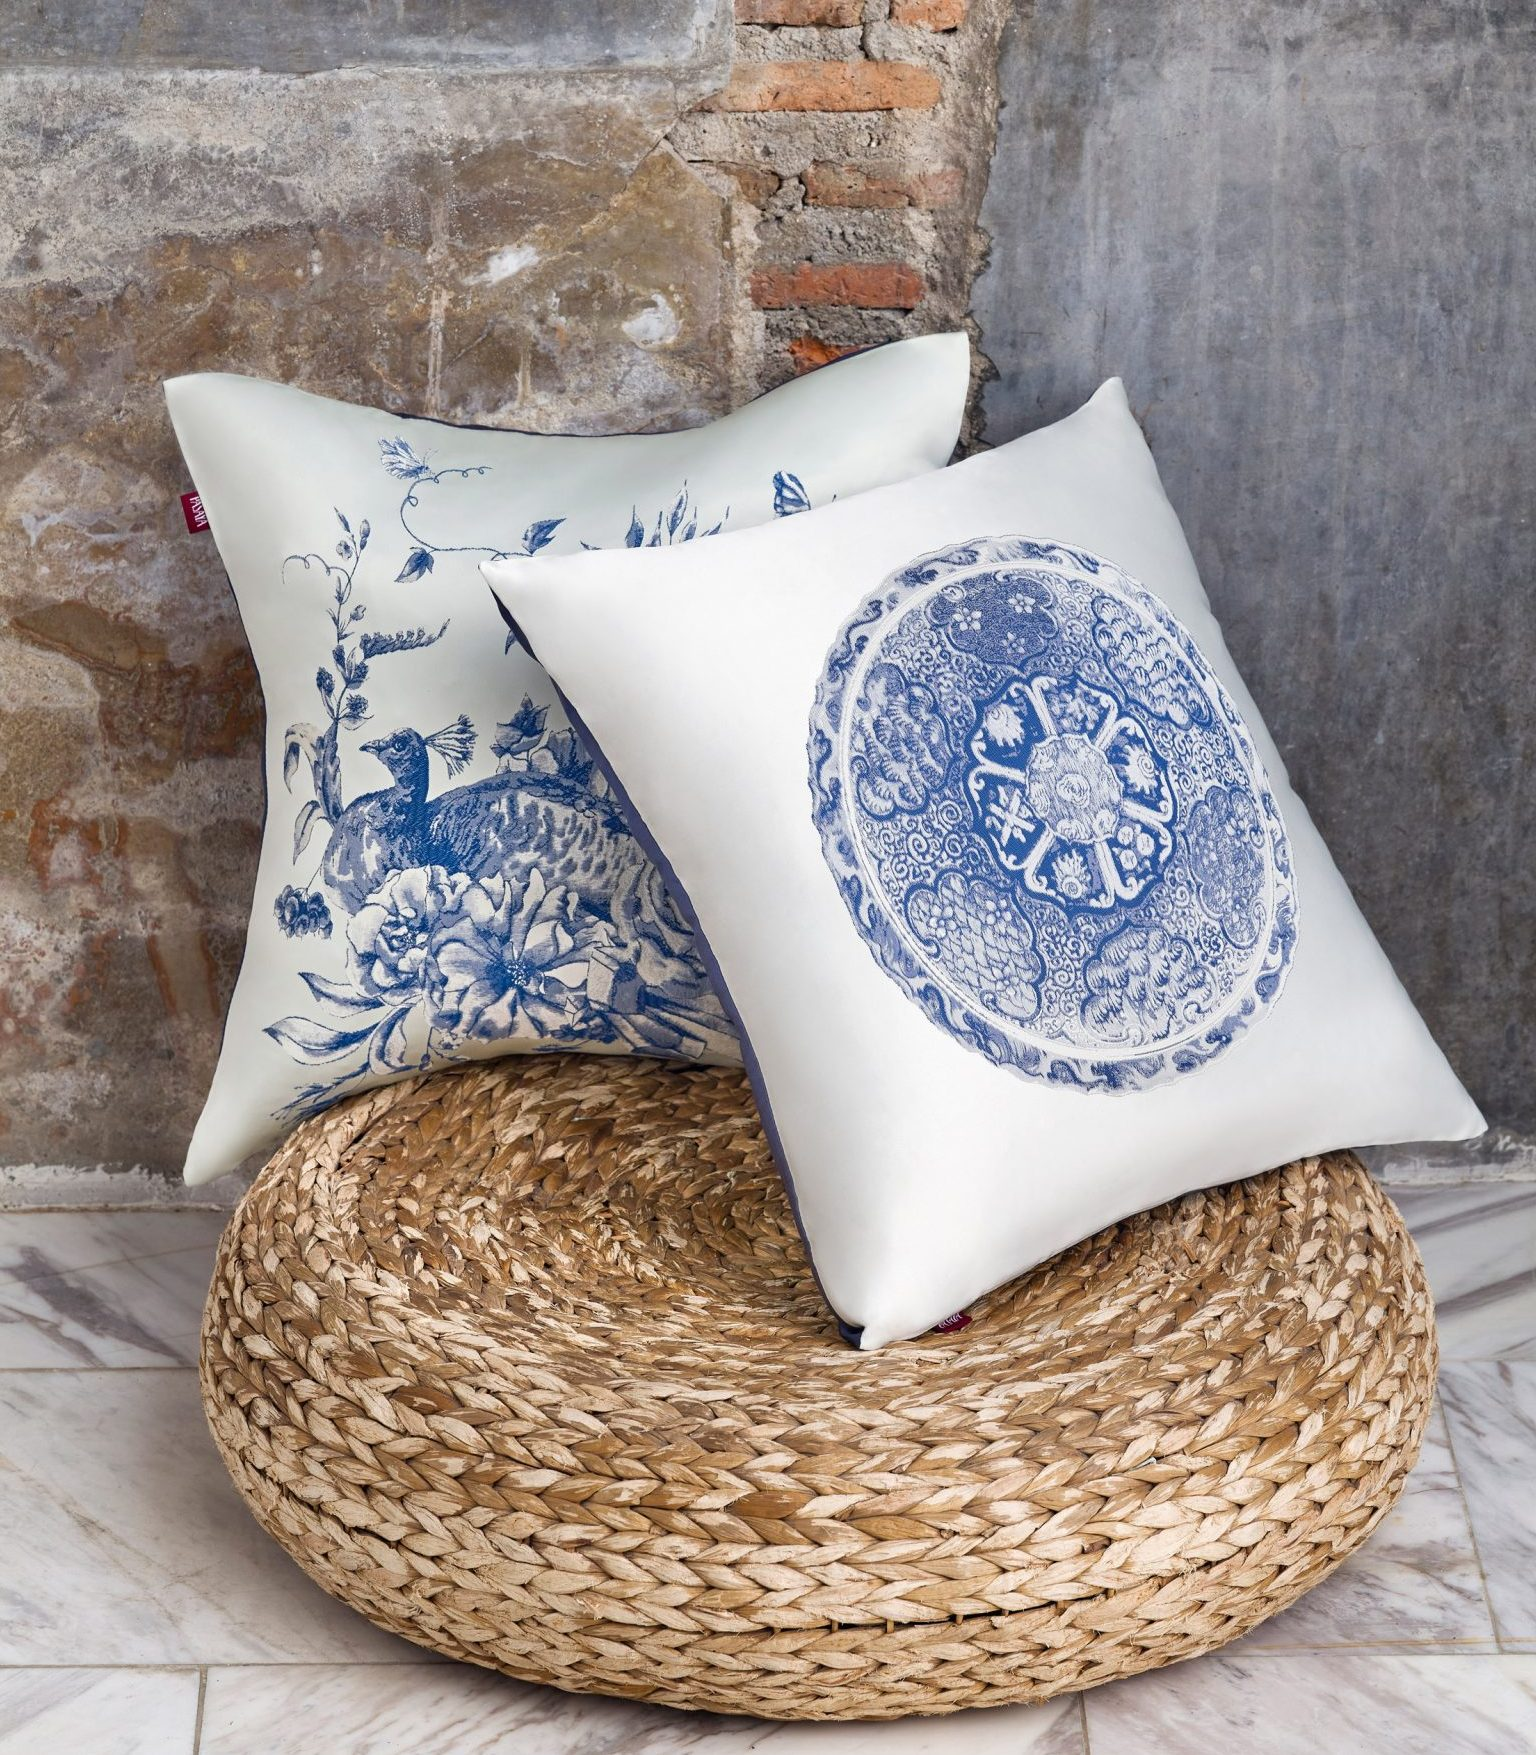 White cushions with blue and white patterns